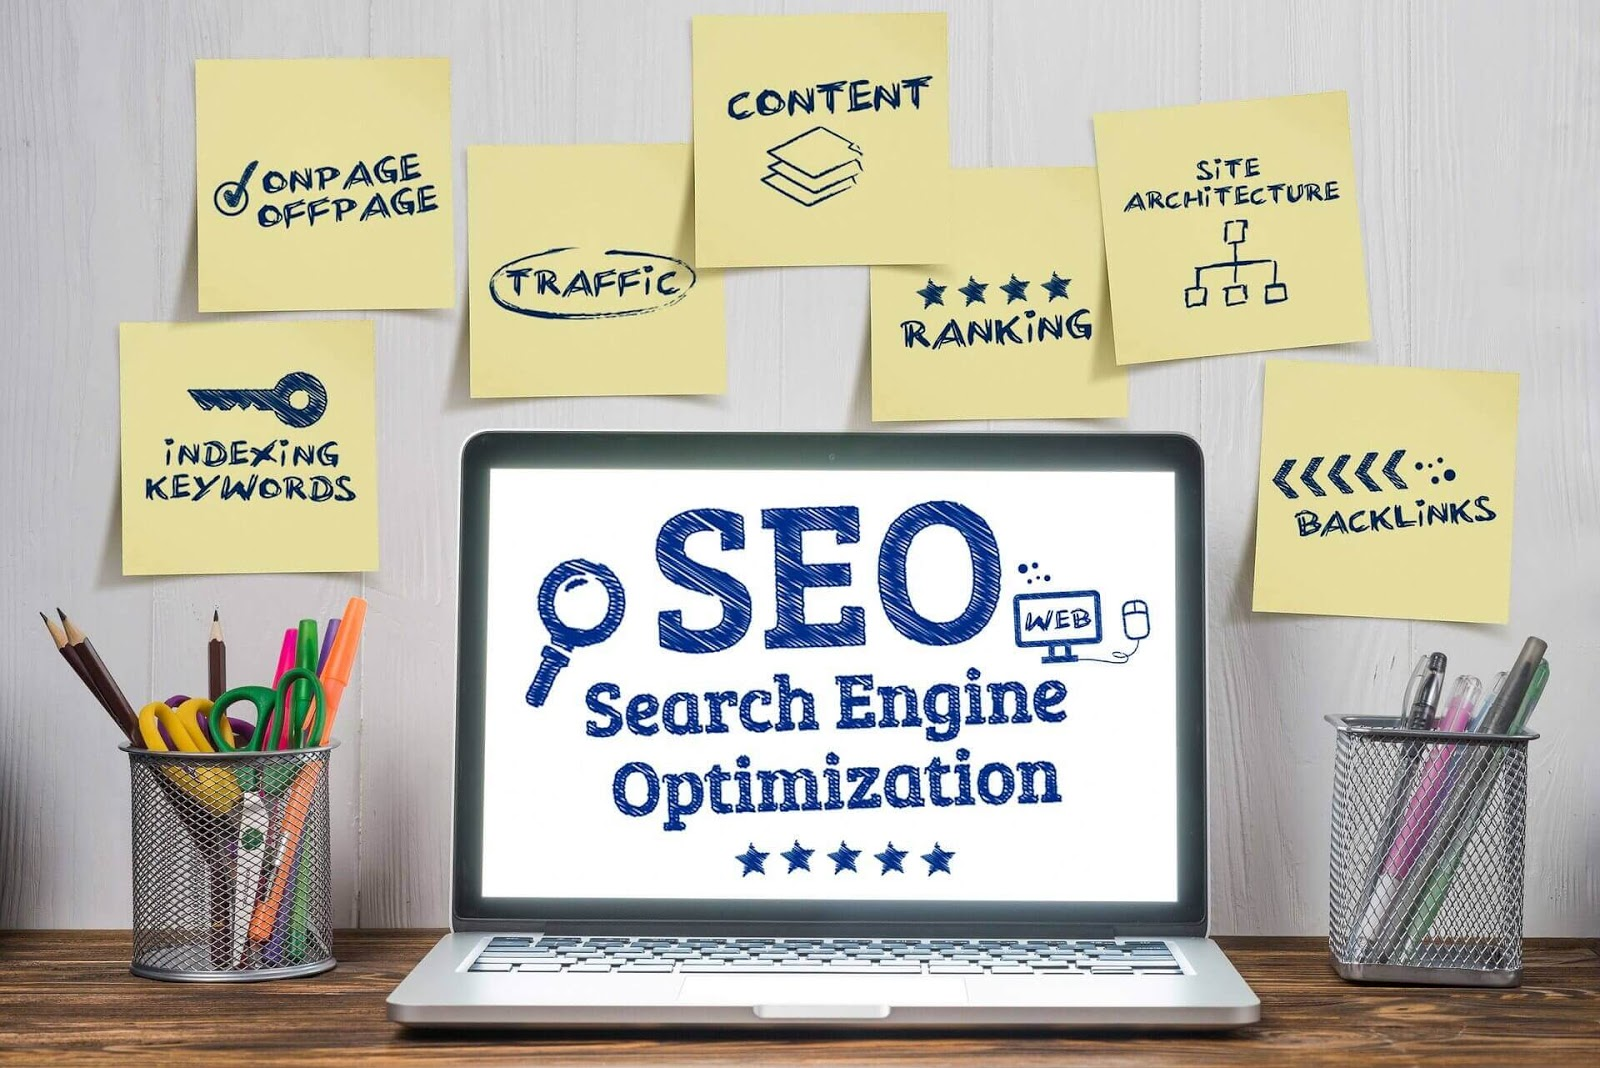 SEO Search Engine Optimization for beginners in 2020, on page SEO complete guide for beginners, This SEO tutorial article will help you understand what is SEO, why we need SEO, what is keyword research, how does a search engine work, on-page SEO, off-page SEO, Google algorithms, types of SEO, what is an ideal website architecture, what is local SEO, how to measure your SEO performance, and at the end there will be a short quiz to test your understanding on SEO. SEO, or search engine optimization, is the work that we do to make our websites more prominent in the major search engines, such as Google, Yahoo, and Bing. The more prominent our web pages are in the search engines, the more visitors and searchers will be exposed to our business information. To some businesses, this is the primary channel for gaining new customers. The ultimate goal is for your company's web pages to appear at the top of the rankings when people search for terms related to your business. It has become a fundamental part of online business prospects and there are several experts and gurus in the field.